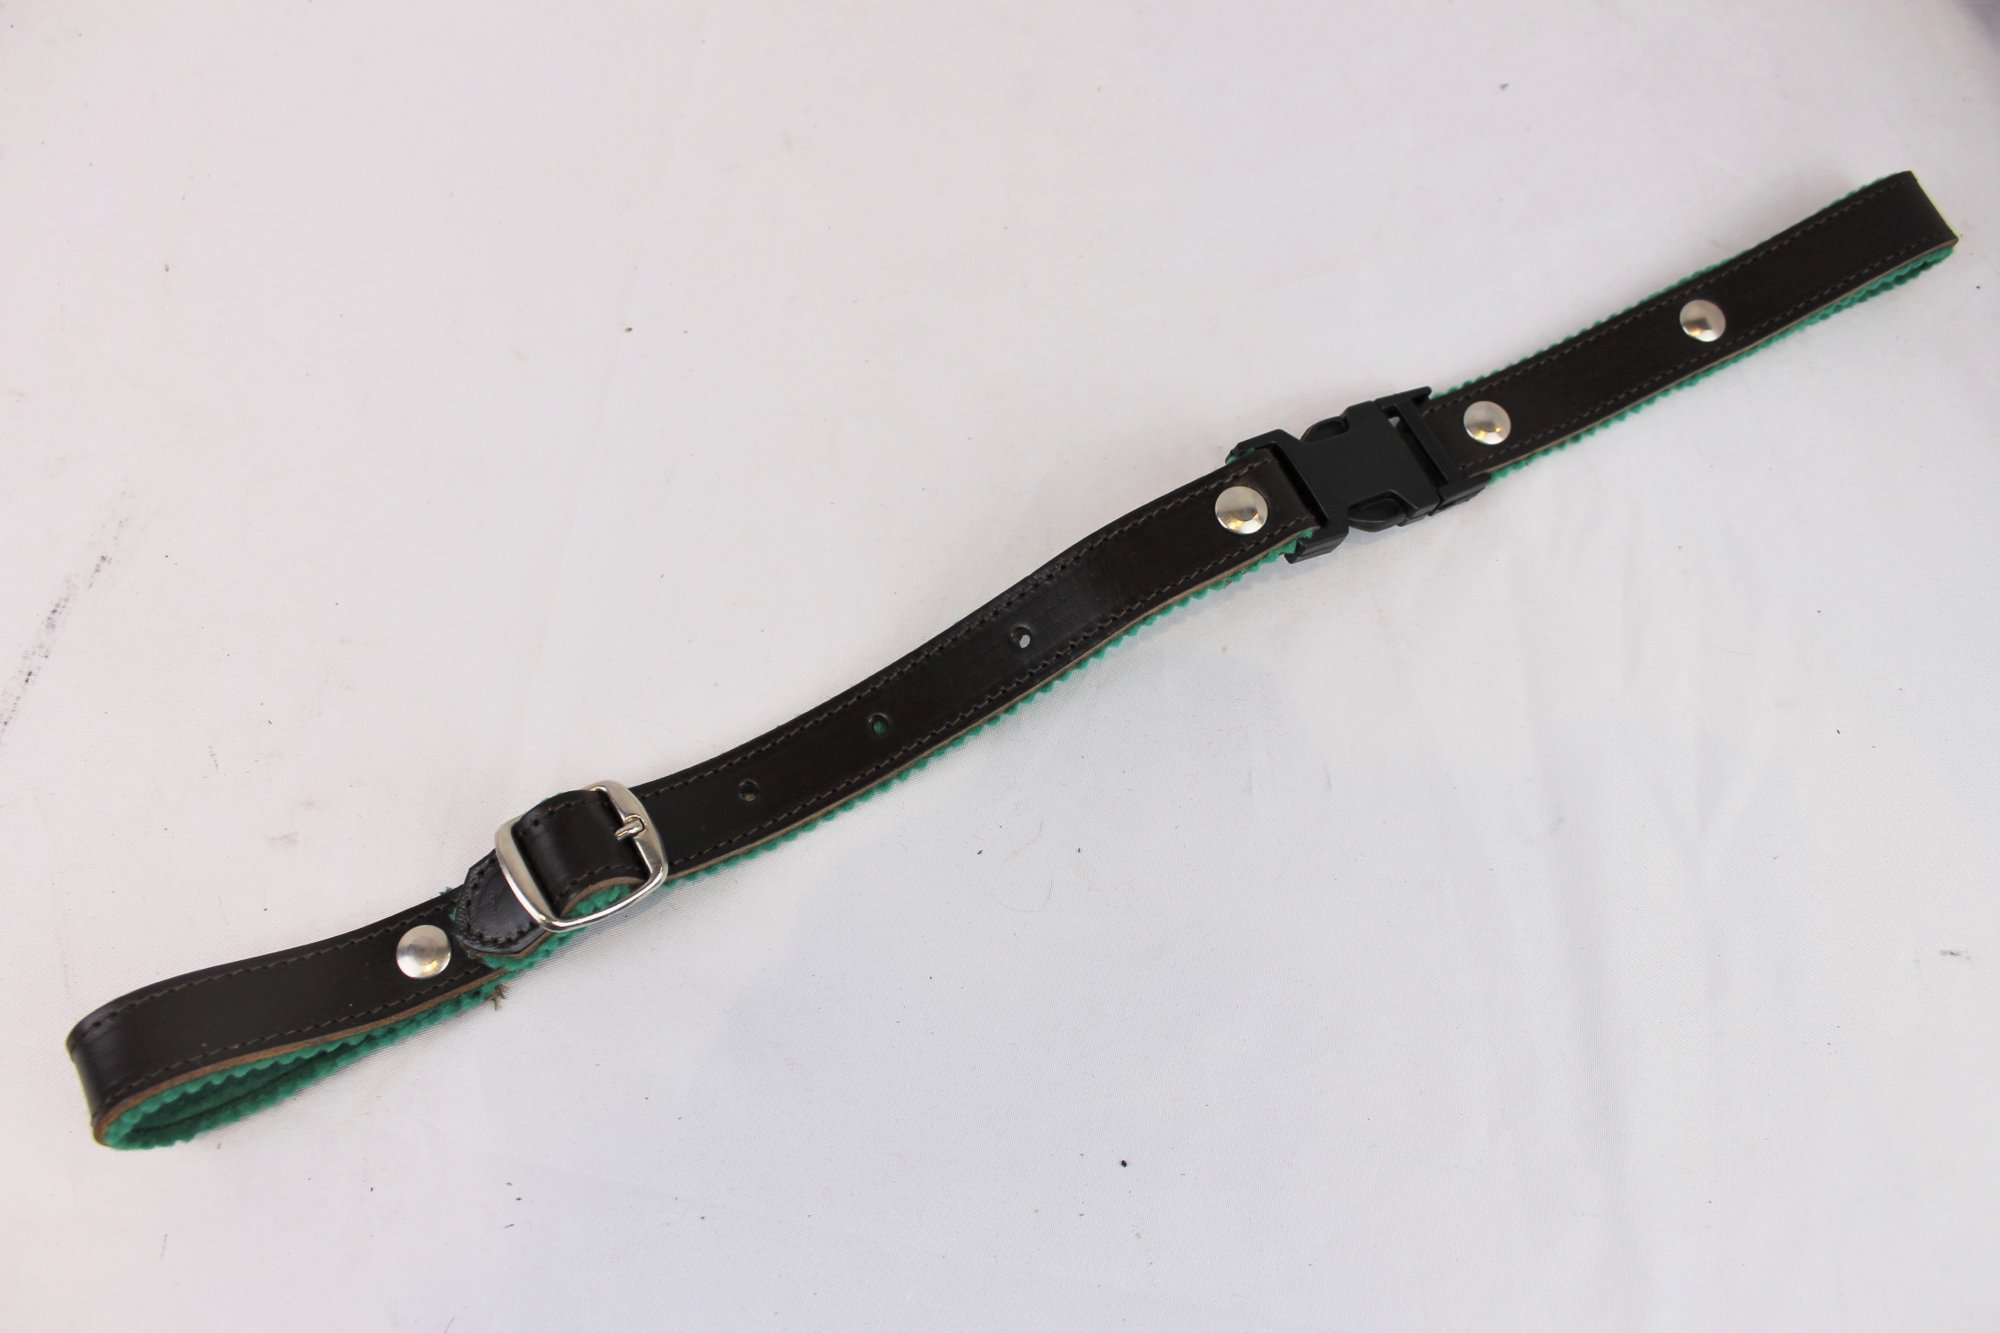 NEW Brown Fuselli Green Felt Lined Leather Back Strap  - Adjustable 13.5 to 17.5